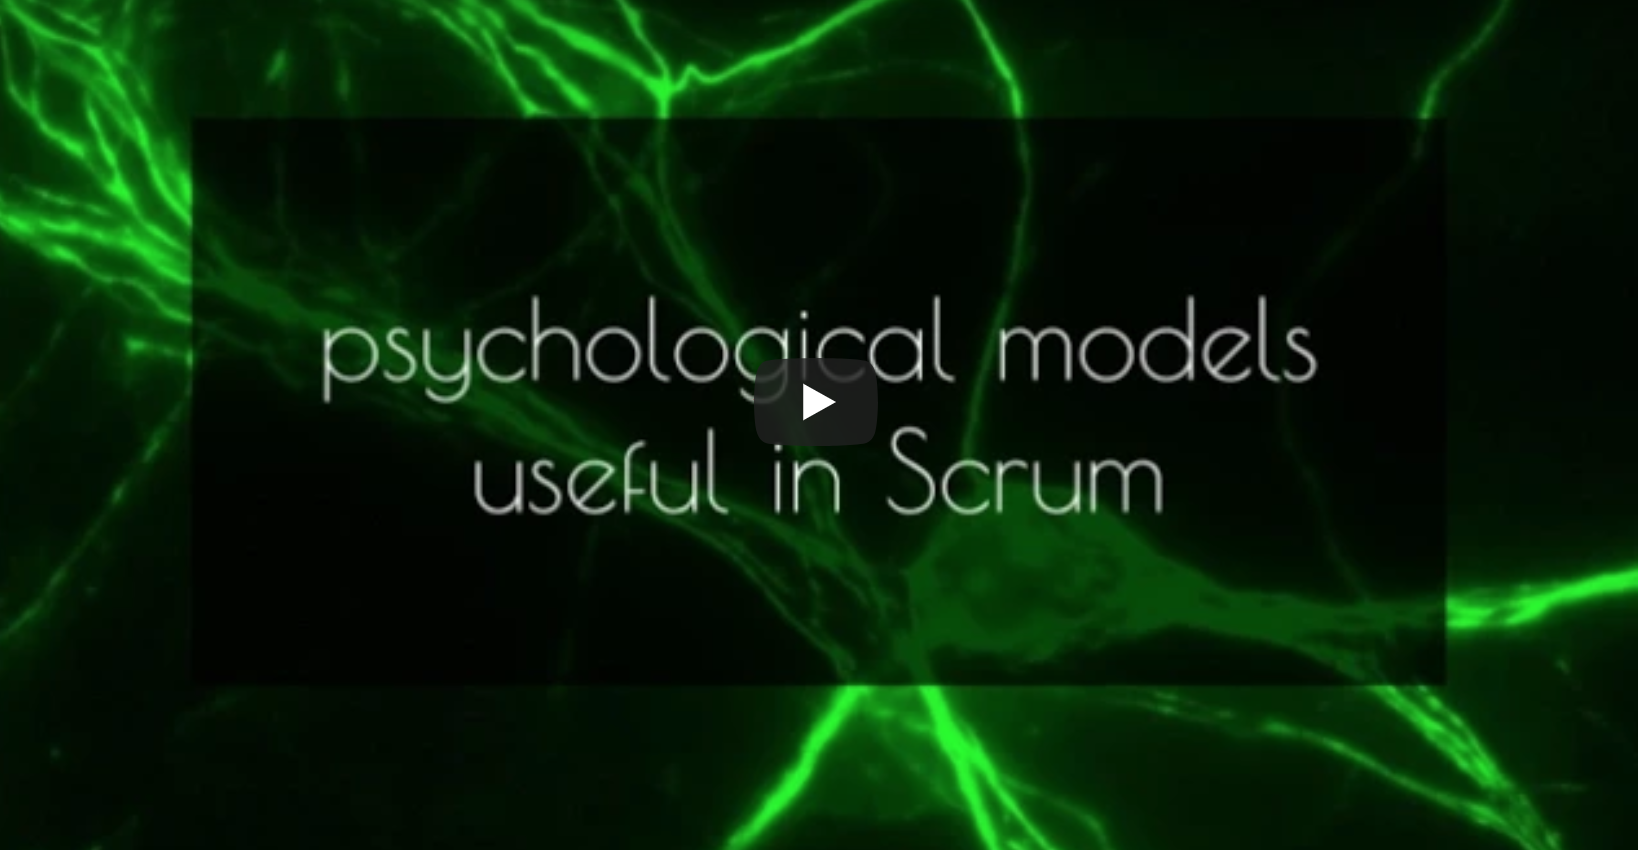 Psychological Models in Scrum